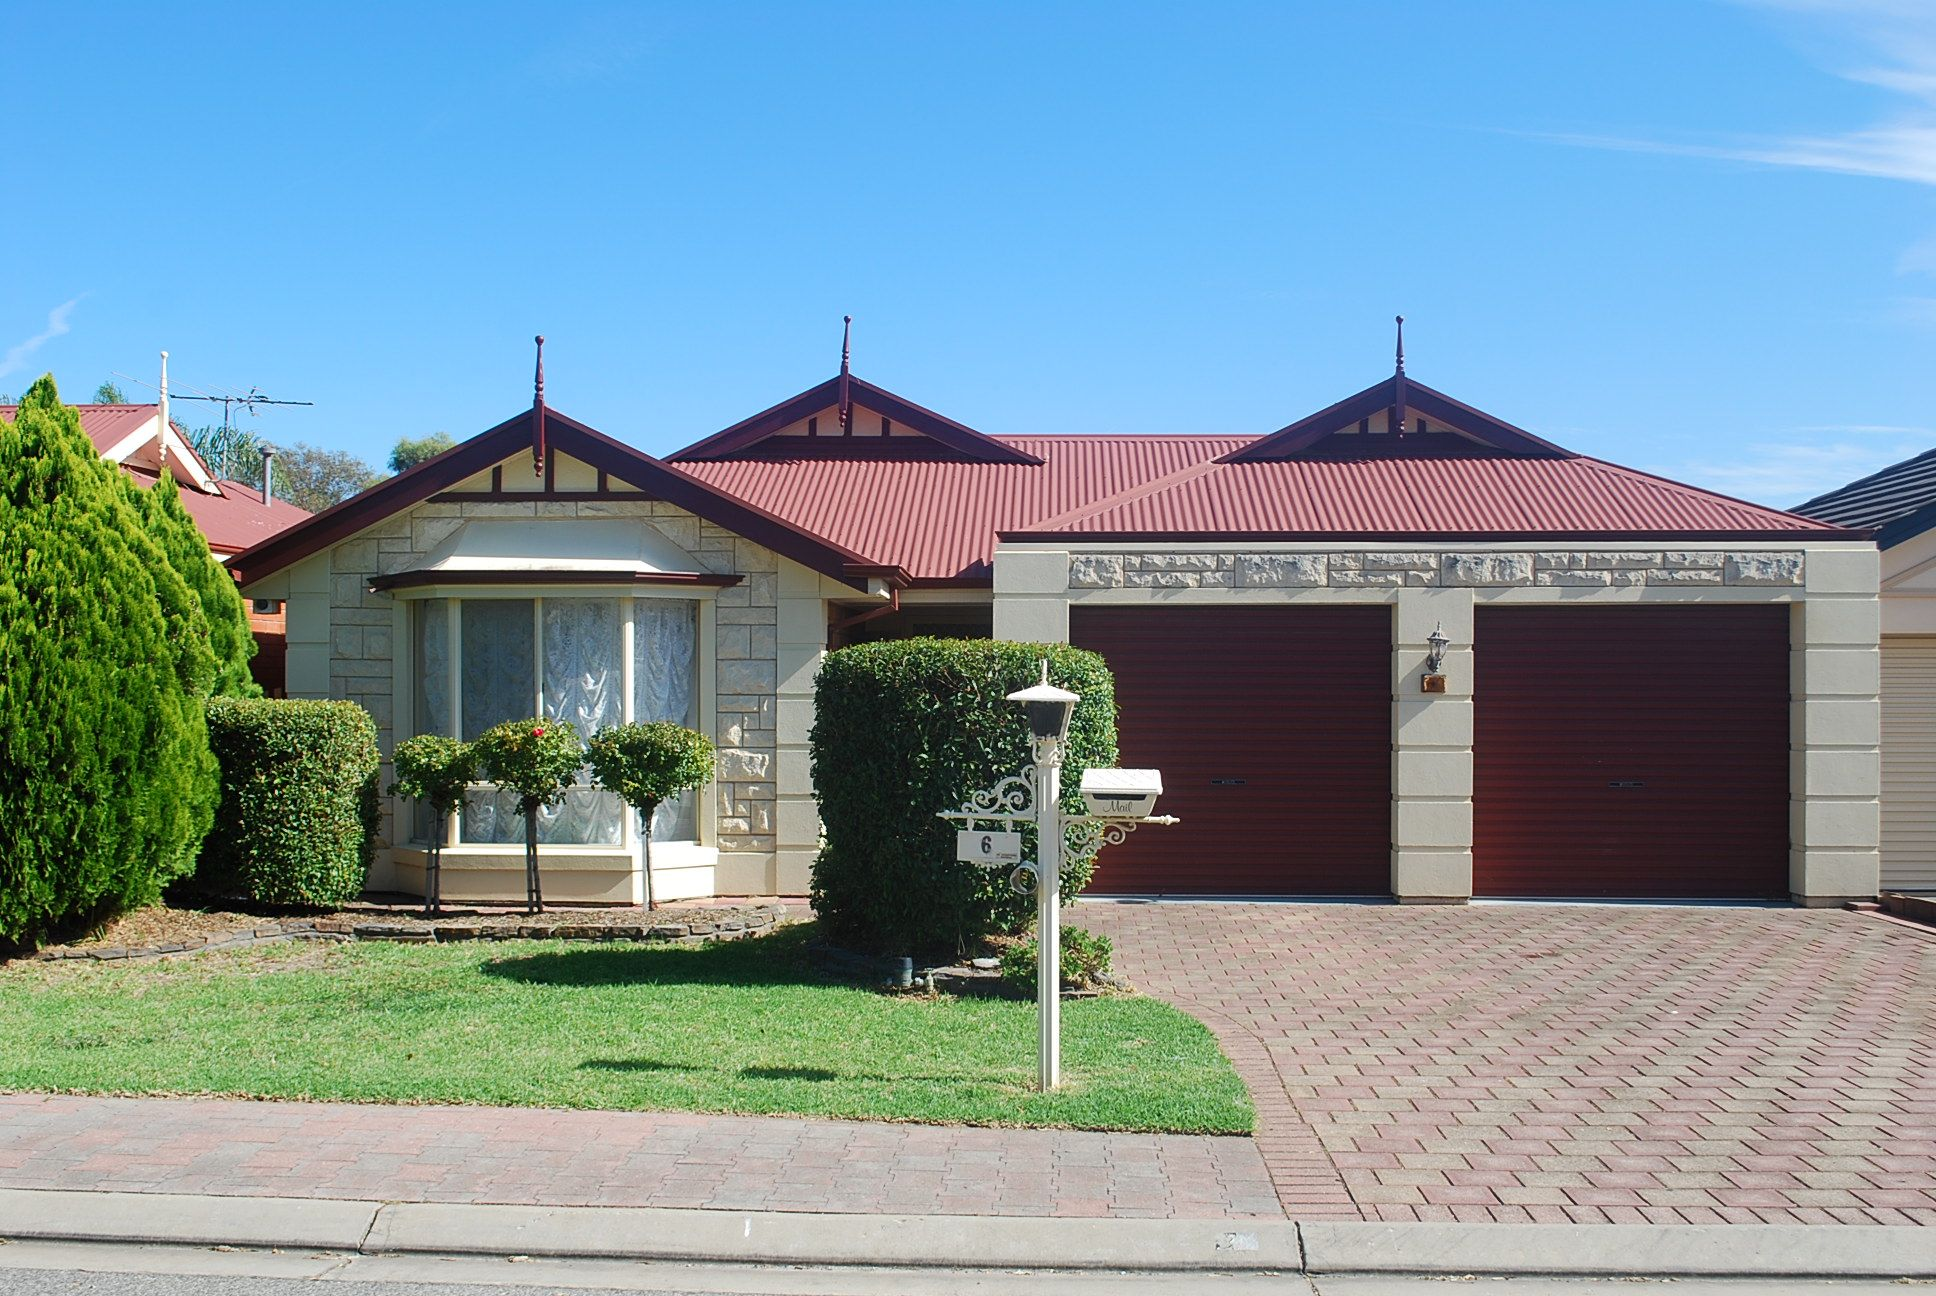 Home In Woodcroft For Sale With Kevin J Barry From The Professionals Christies Beach Real Estate Agency 08 8 Sell Property Real Estate Agency Estate Agency